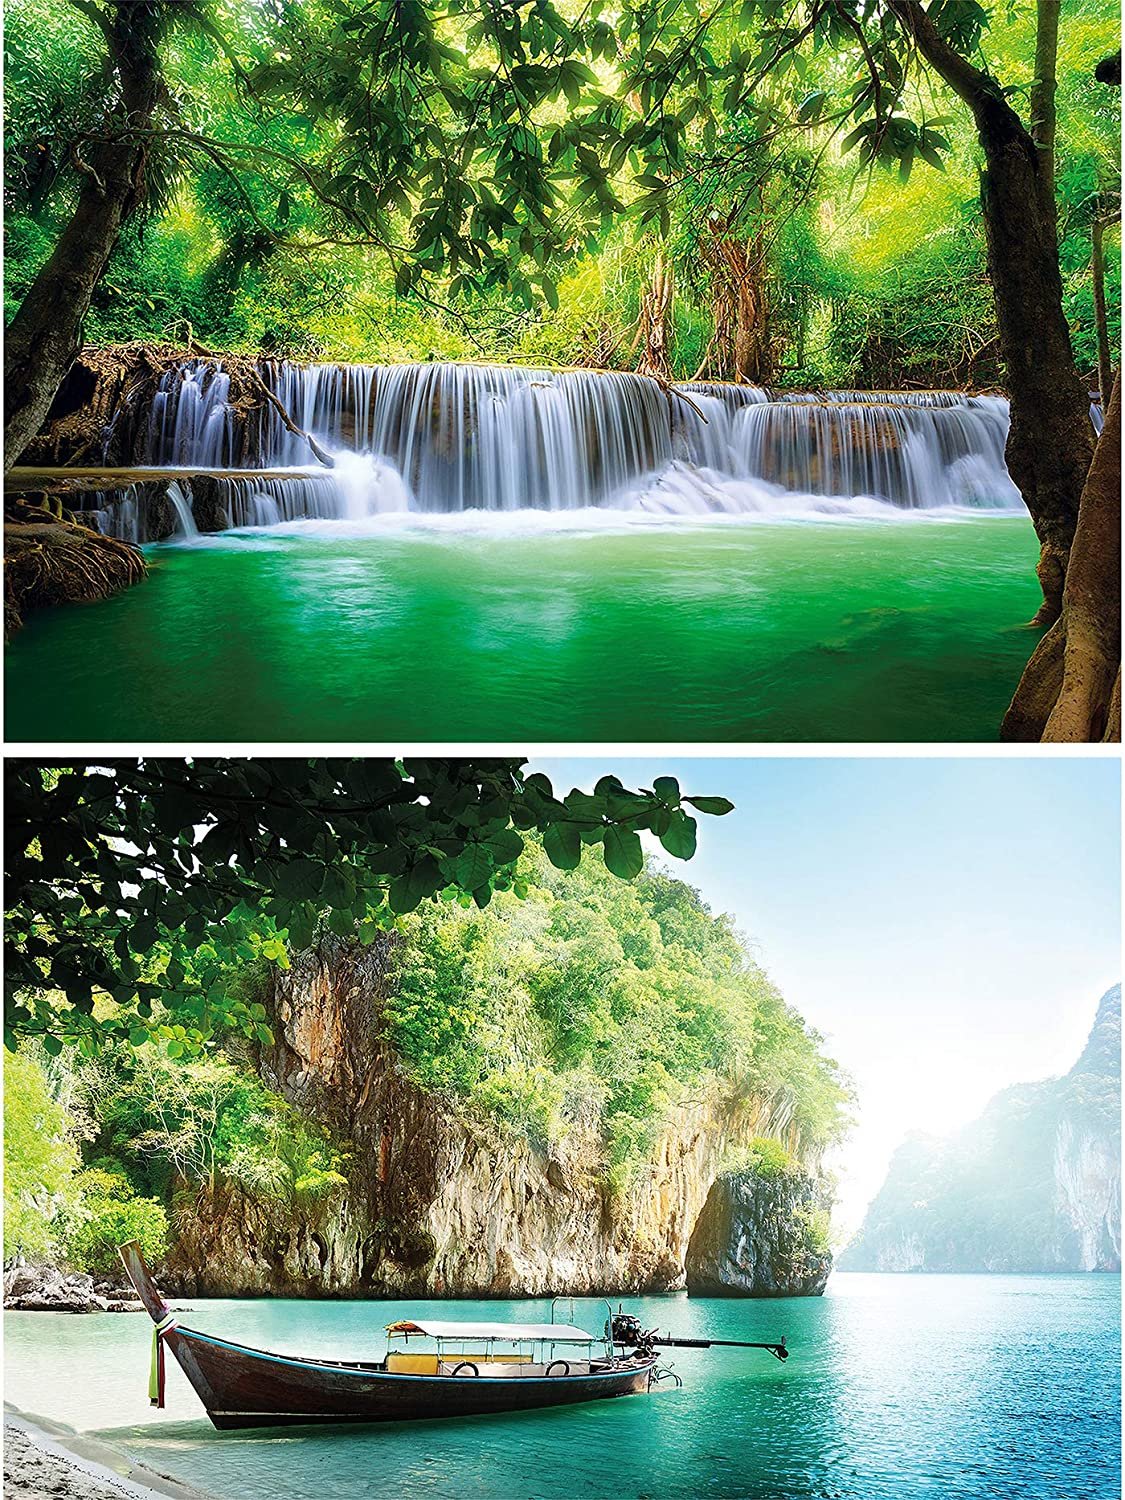 GREAT ART Set of 2 XXL Poster – Waterfall & Bay – Mural Decoration Paradise & Nature Set – Thailand Paradise River Tropical Spa Yoga Picture Wallpaper Photo (55 x 39.4 Inch / 140 x 100 cm)